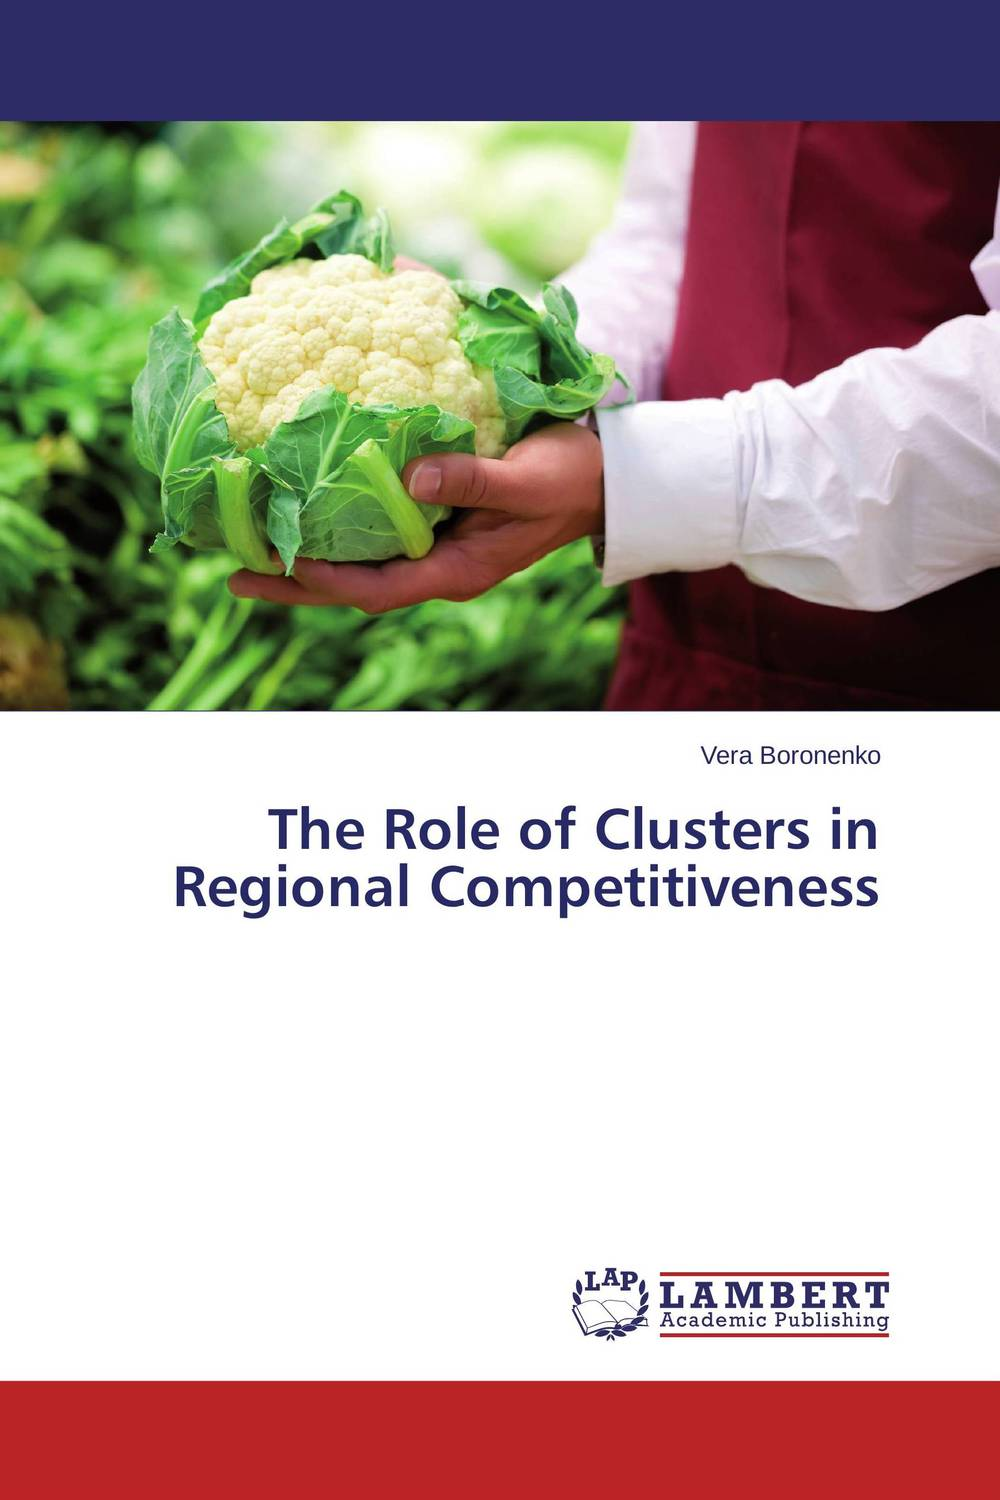 The Role of Clusters in Regional Competitiveness economic methodology